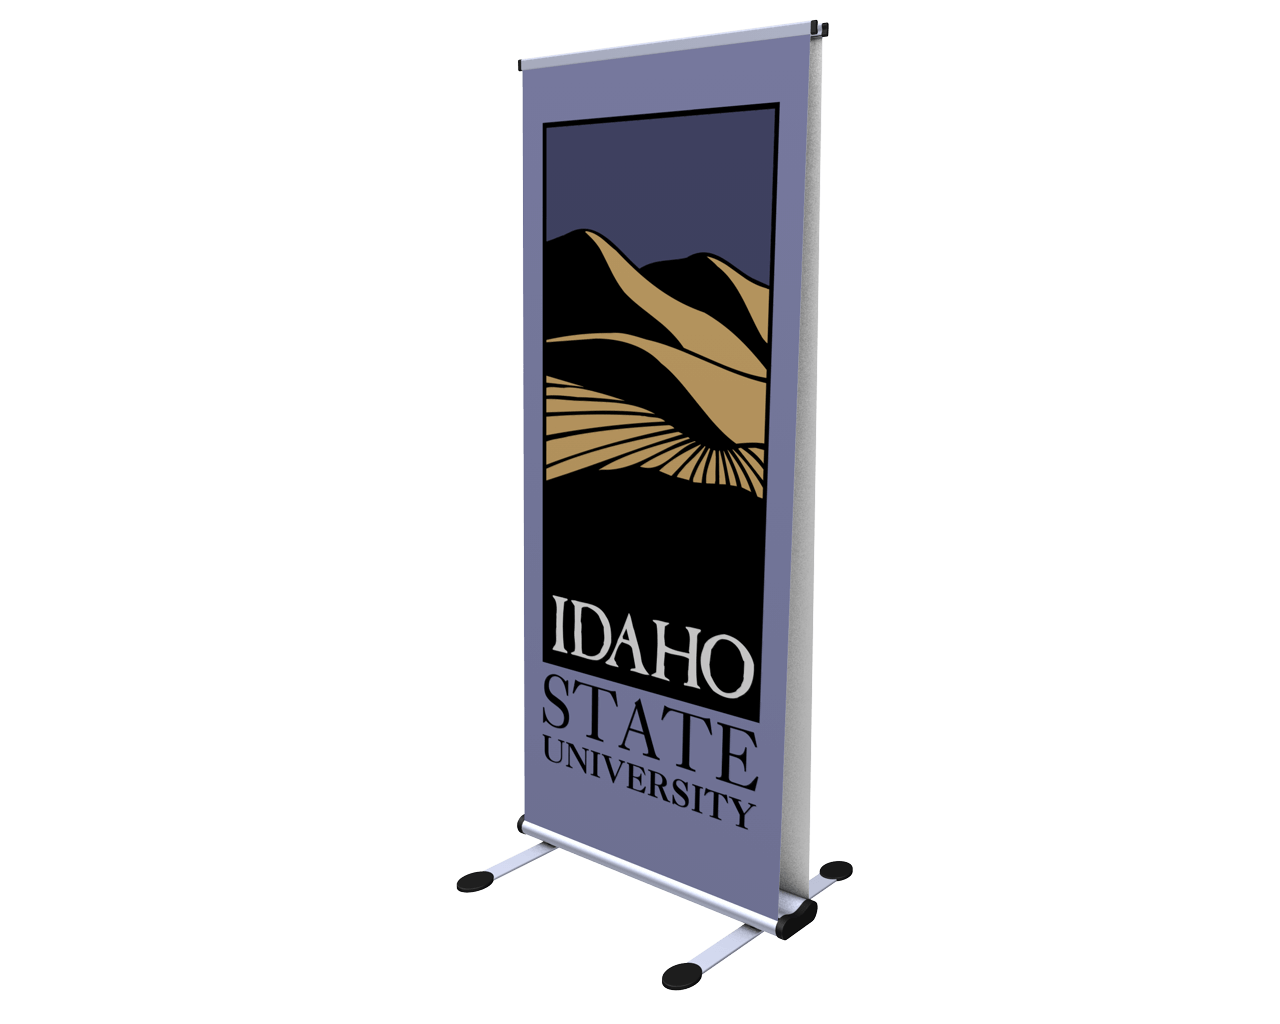 Thunder Double-Sided Retractable Banner Stand